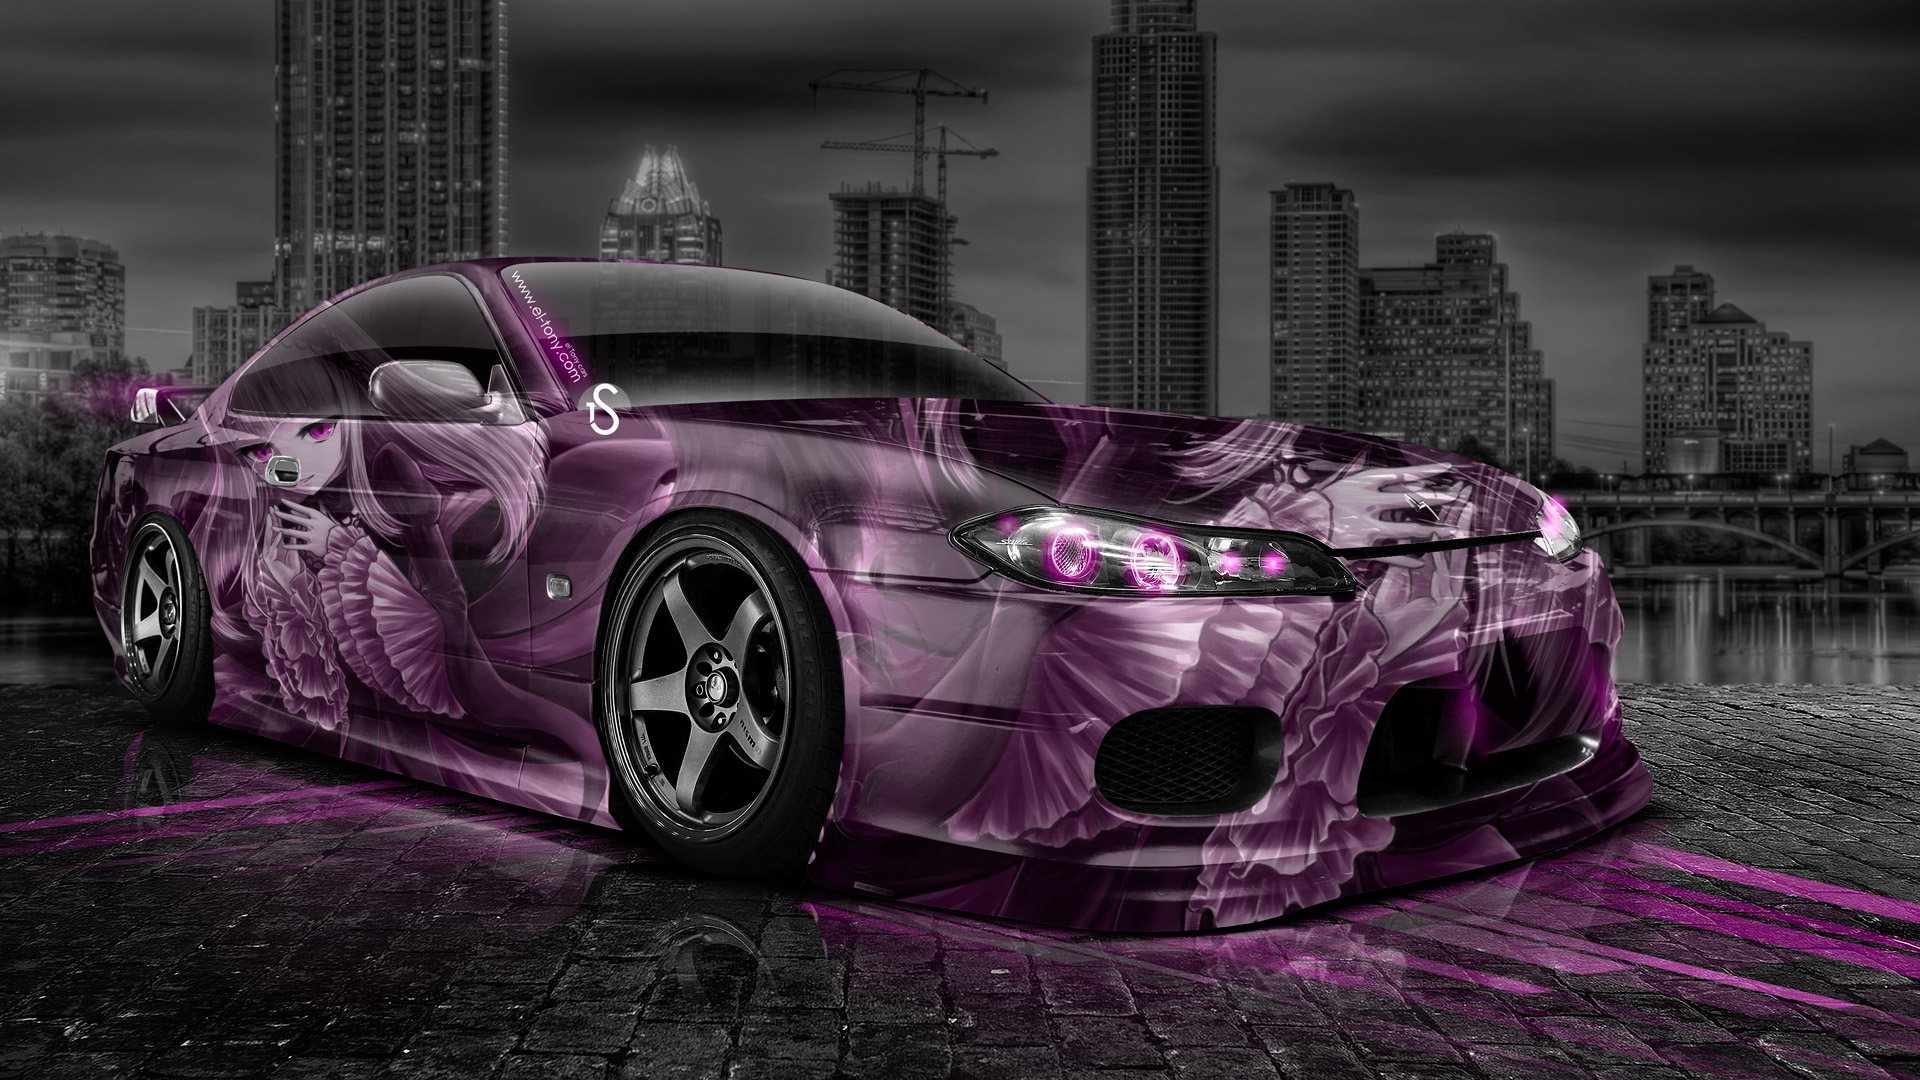 Delightful Nissan Silvia S15 JDM Anime Aerography City Car 2014